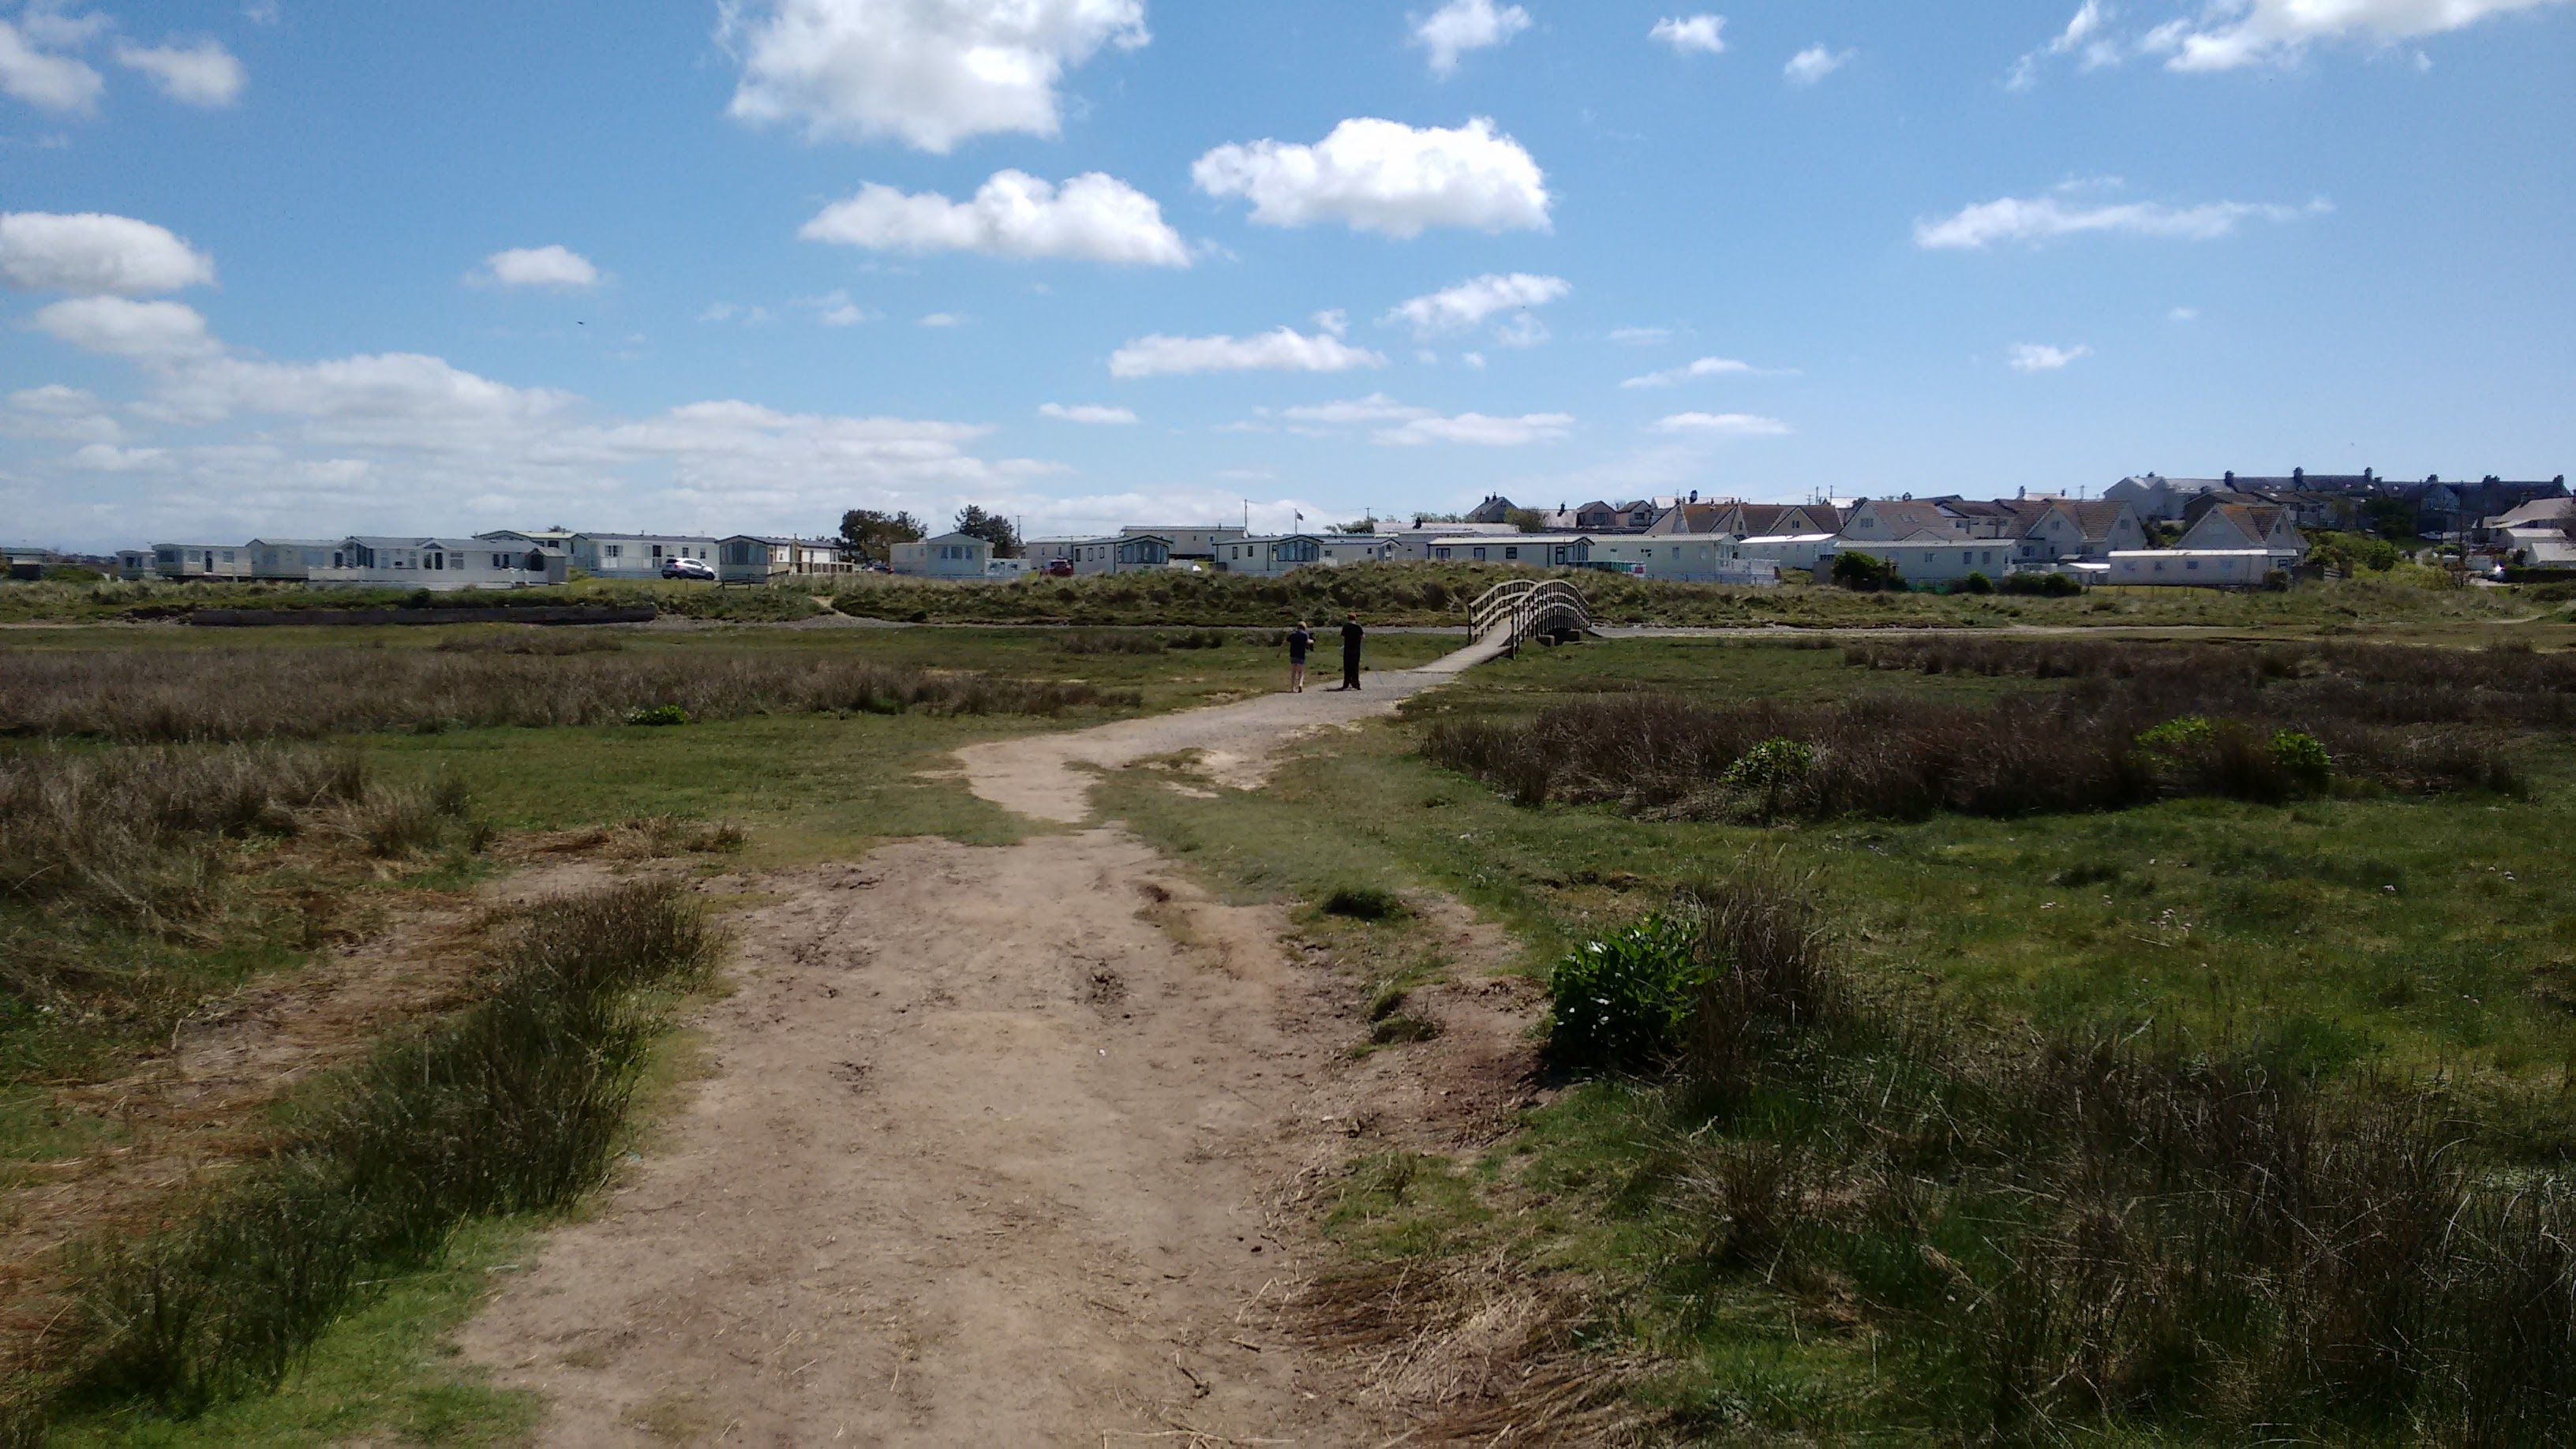 Path from the sand dunes to the riverside entrance to Shoreside